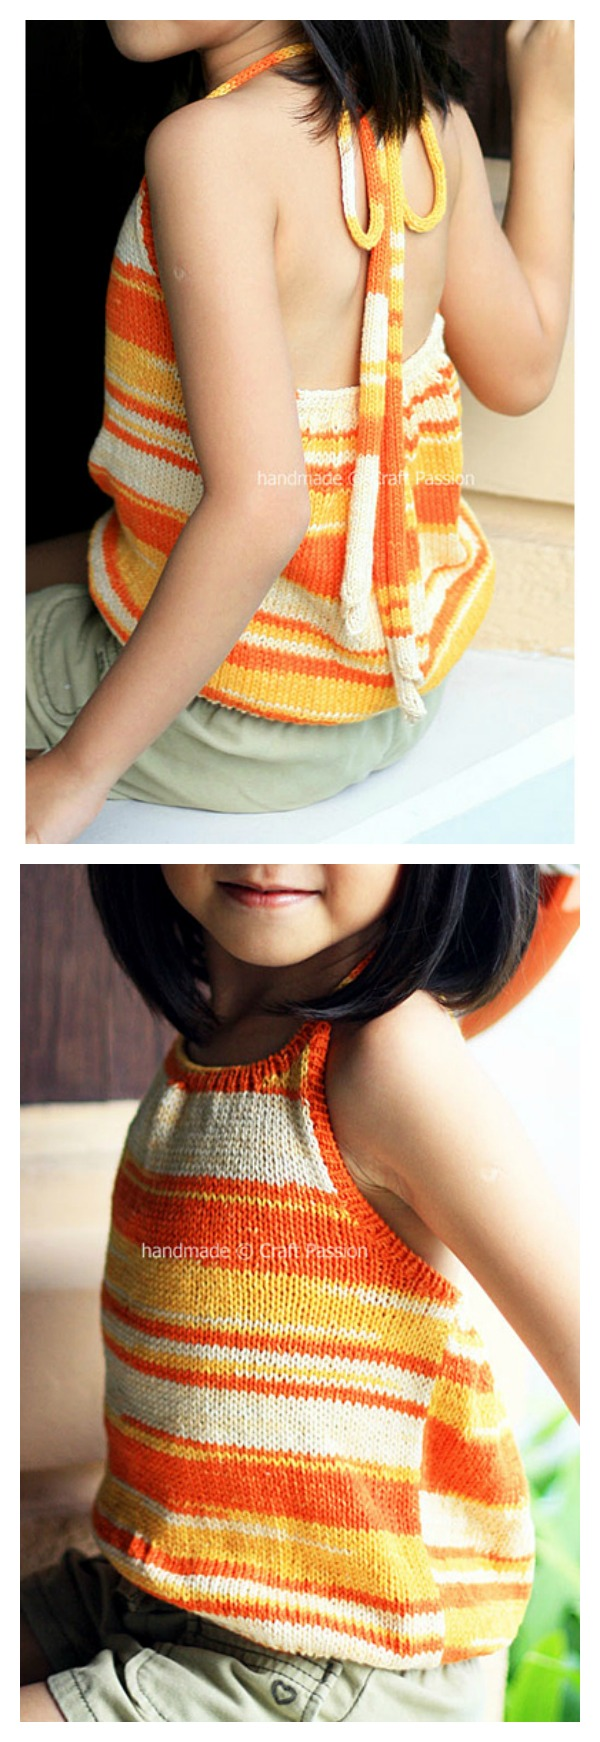 Kniited Halter Top for Girl Free Pattern